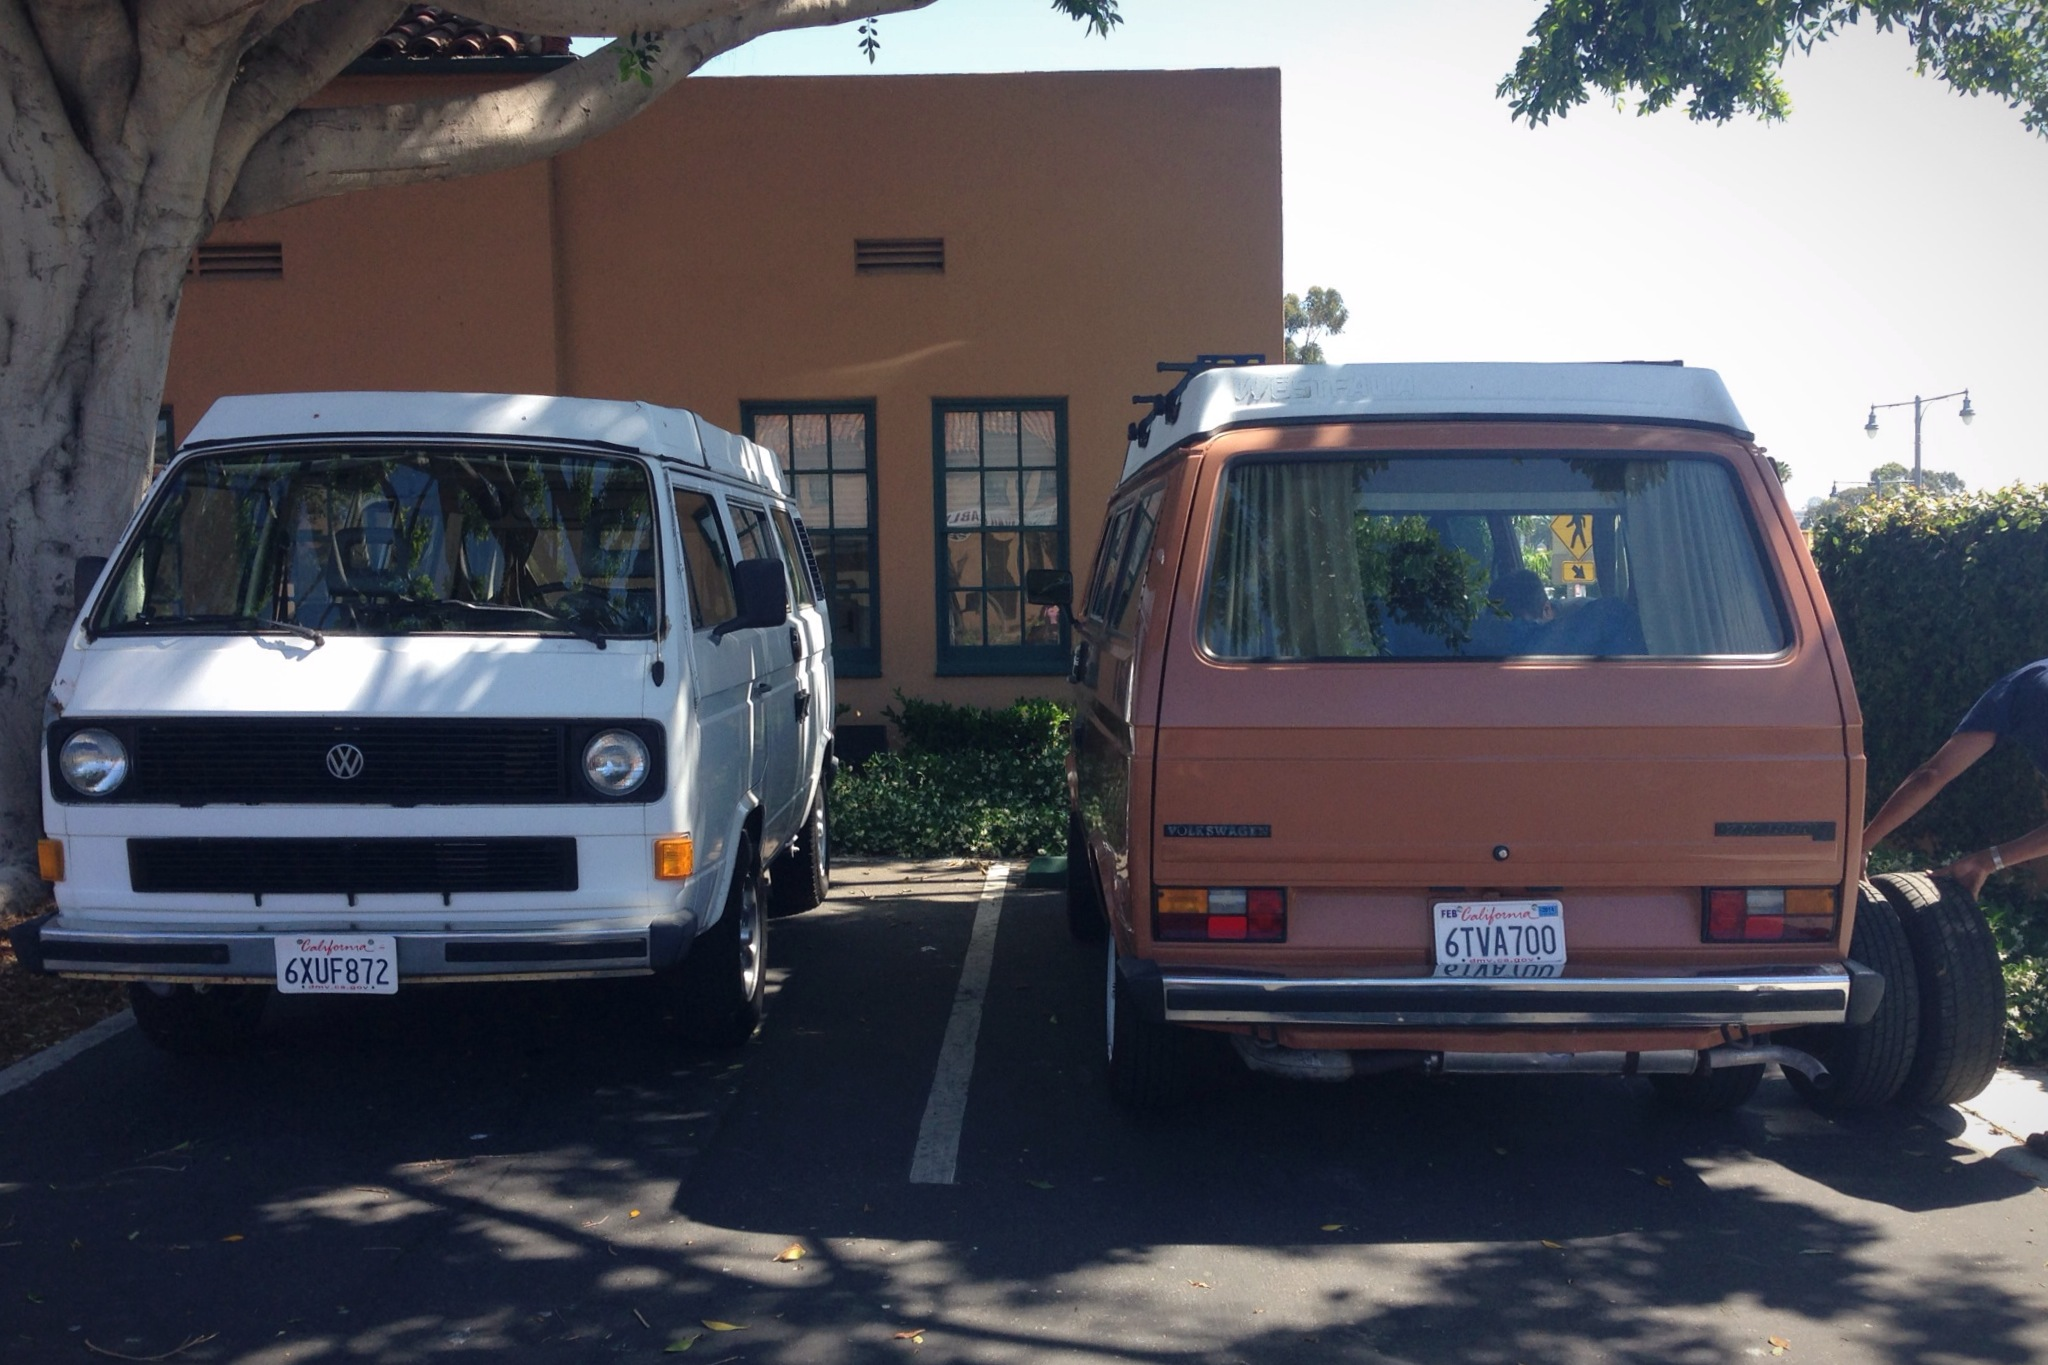 Our Westy's first friend.